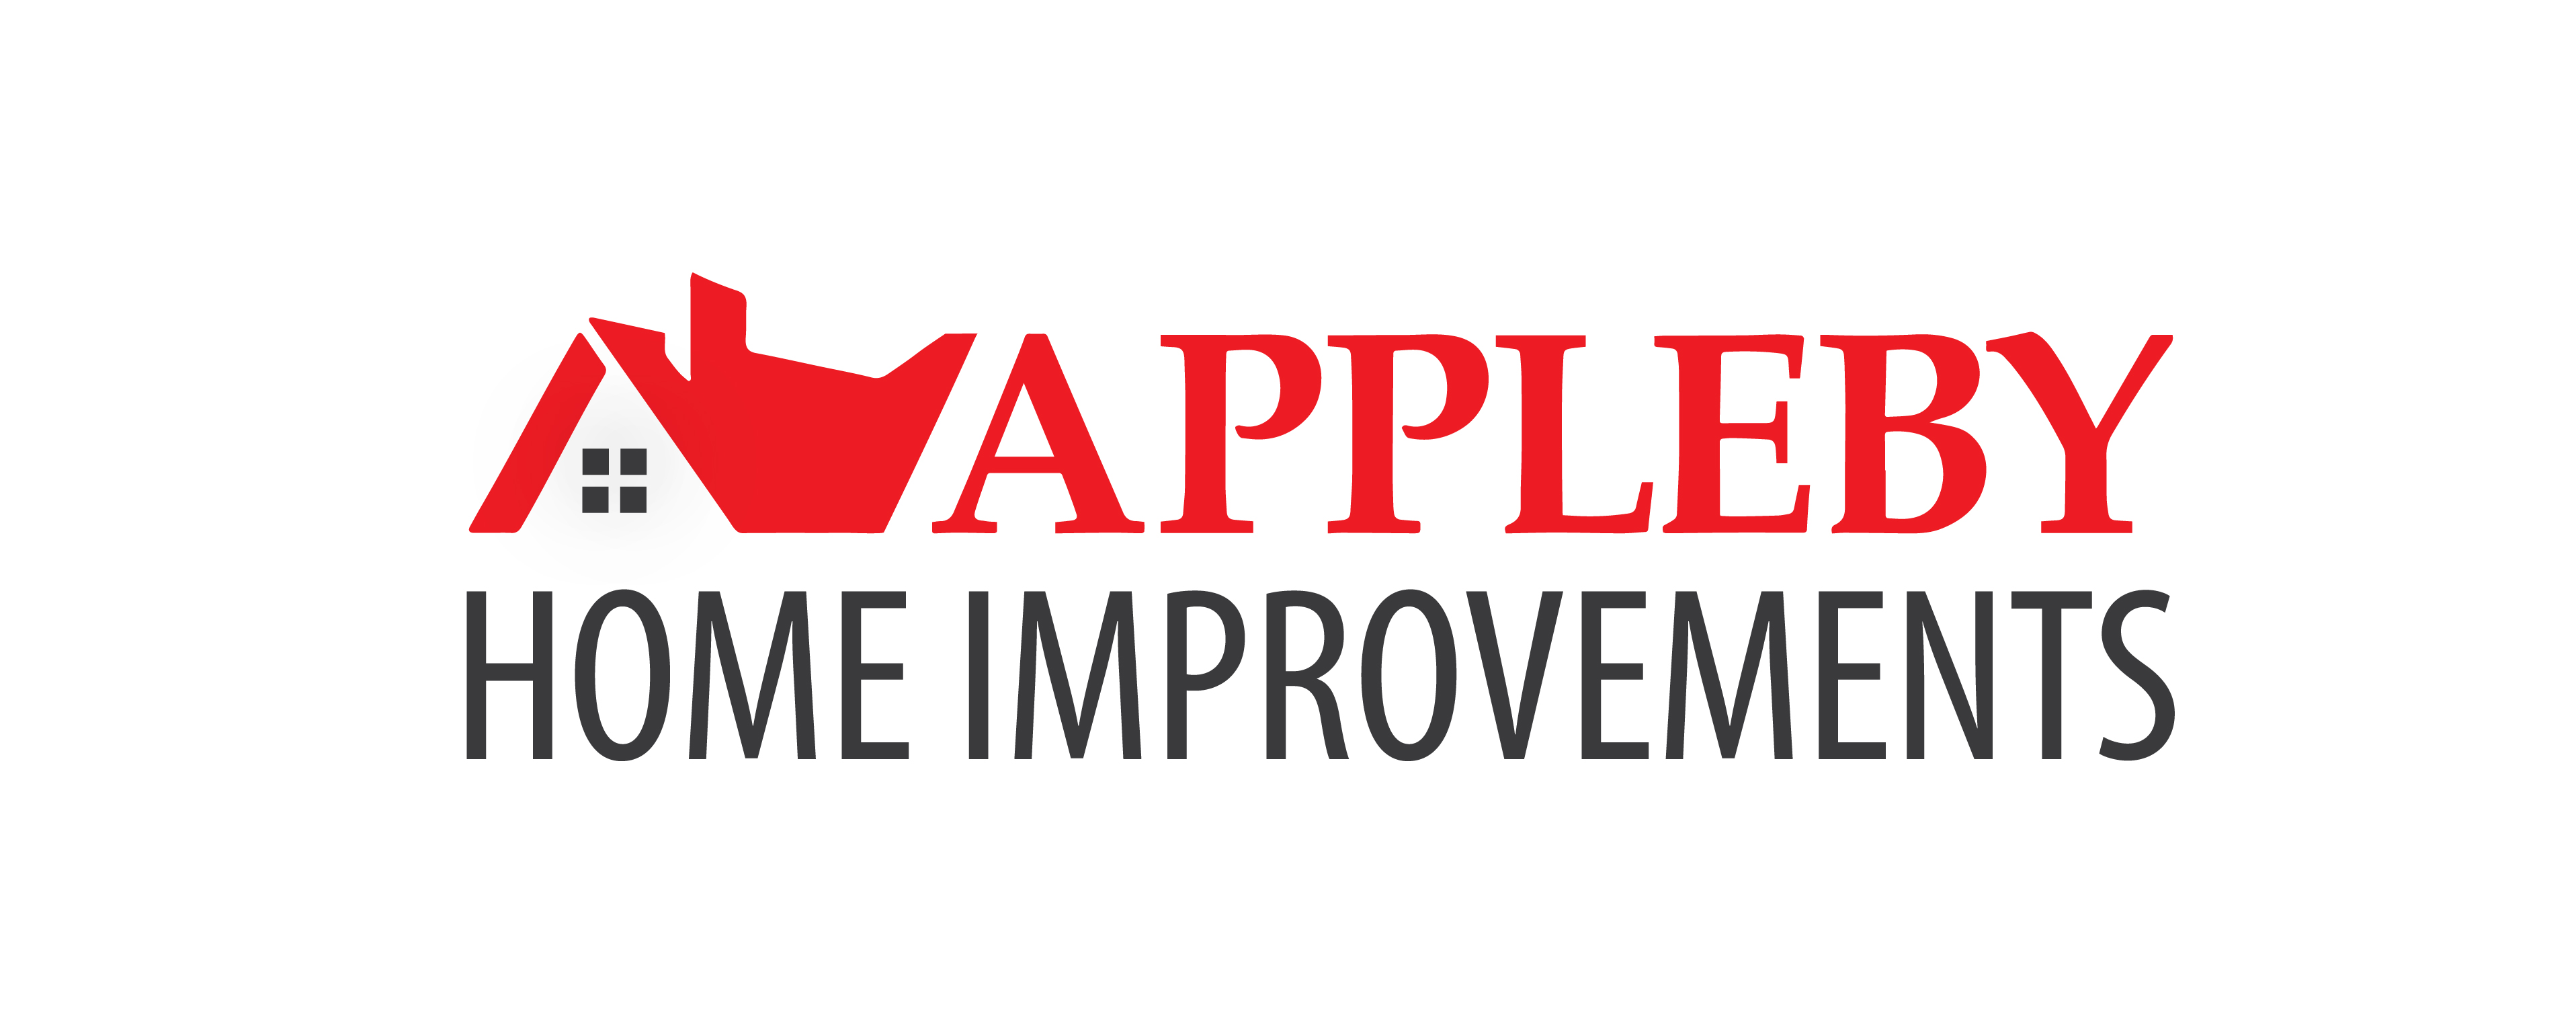 Appleby Home Improvements